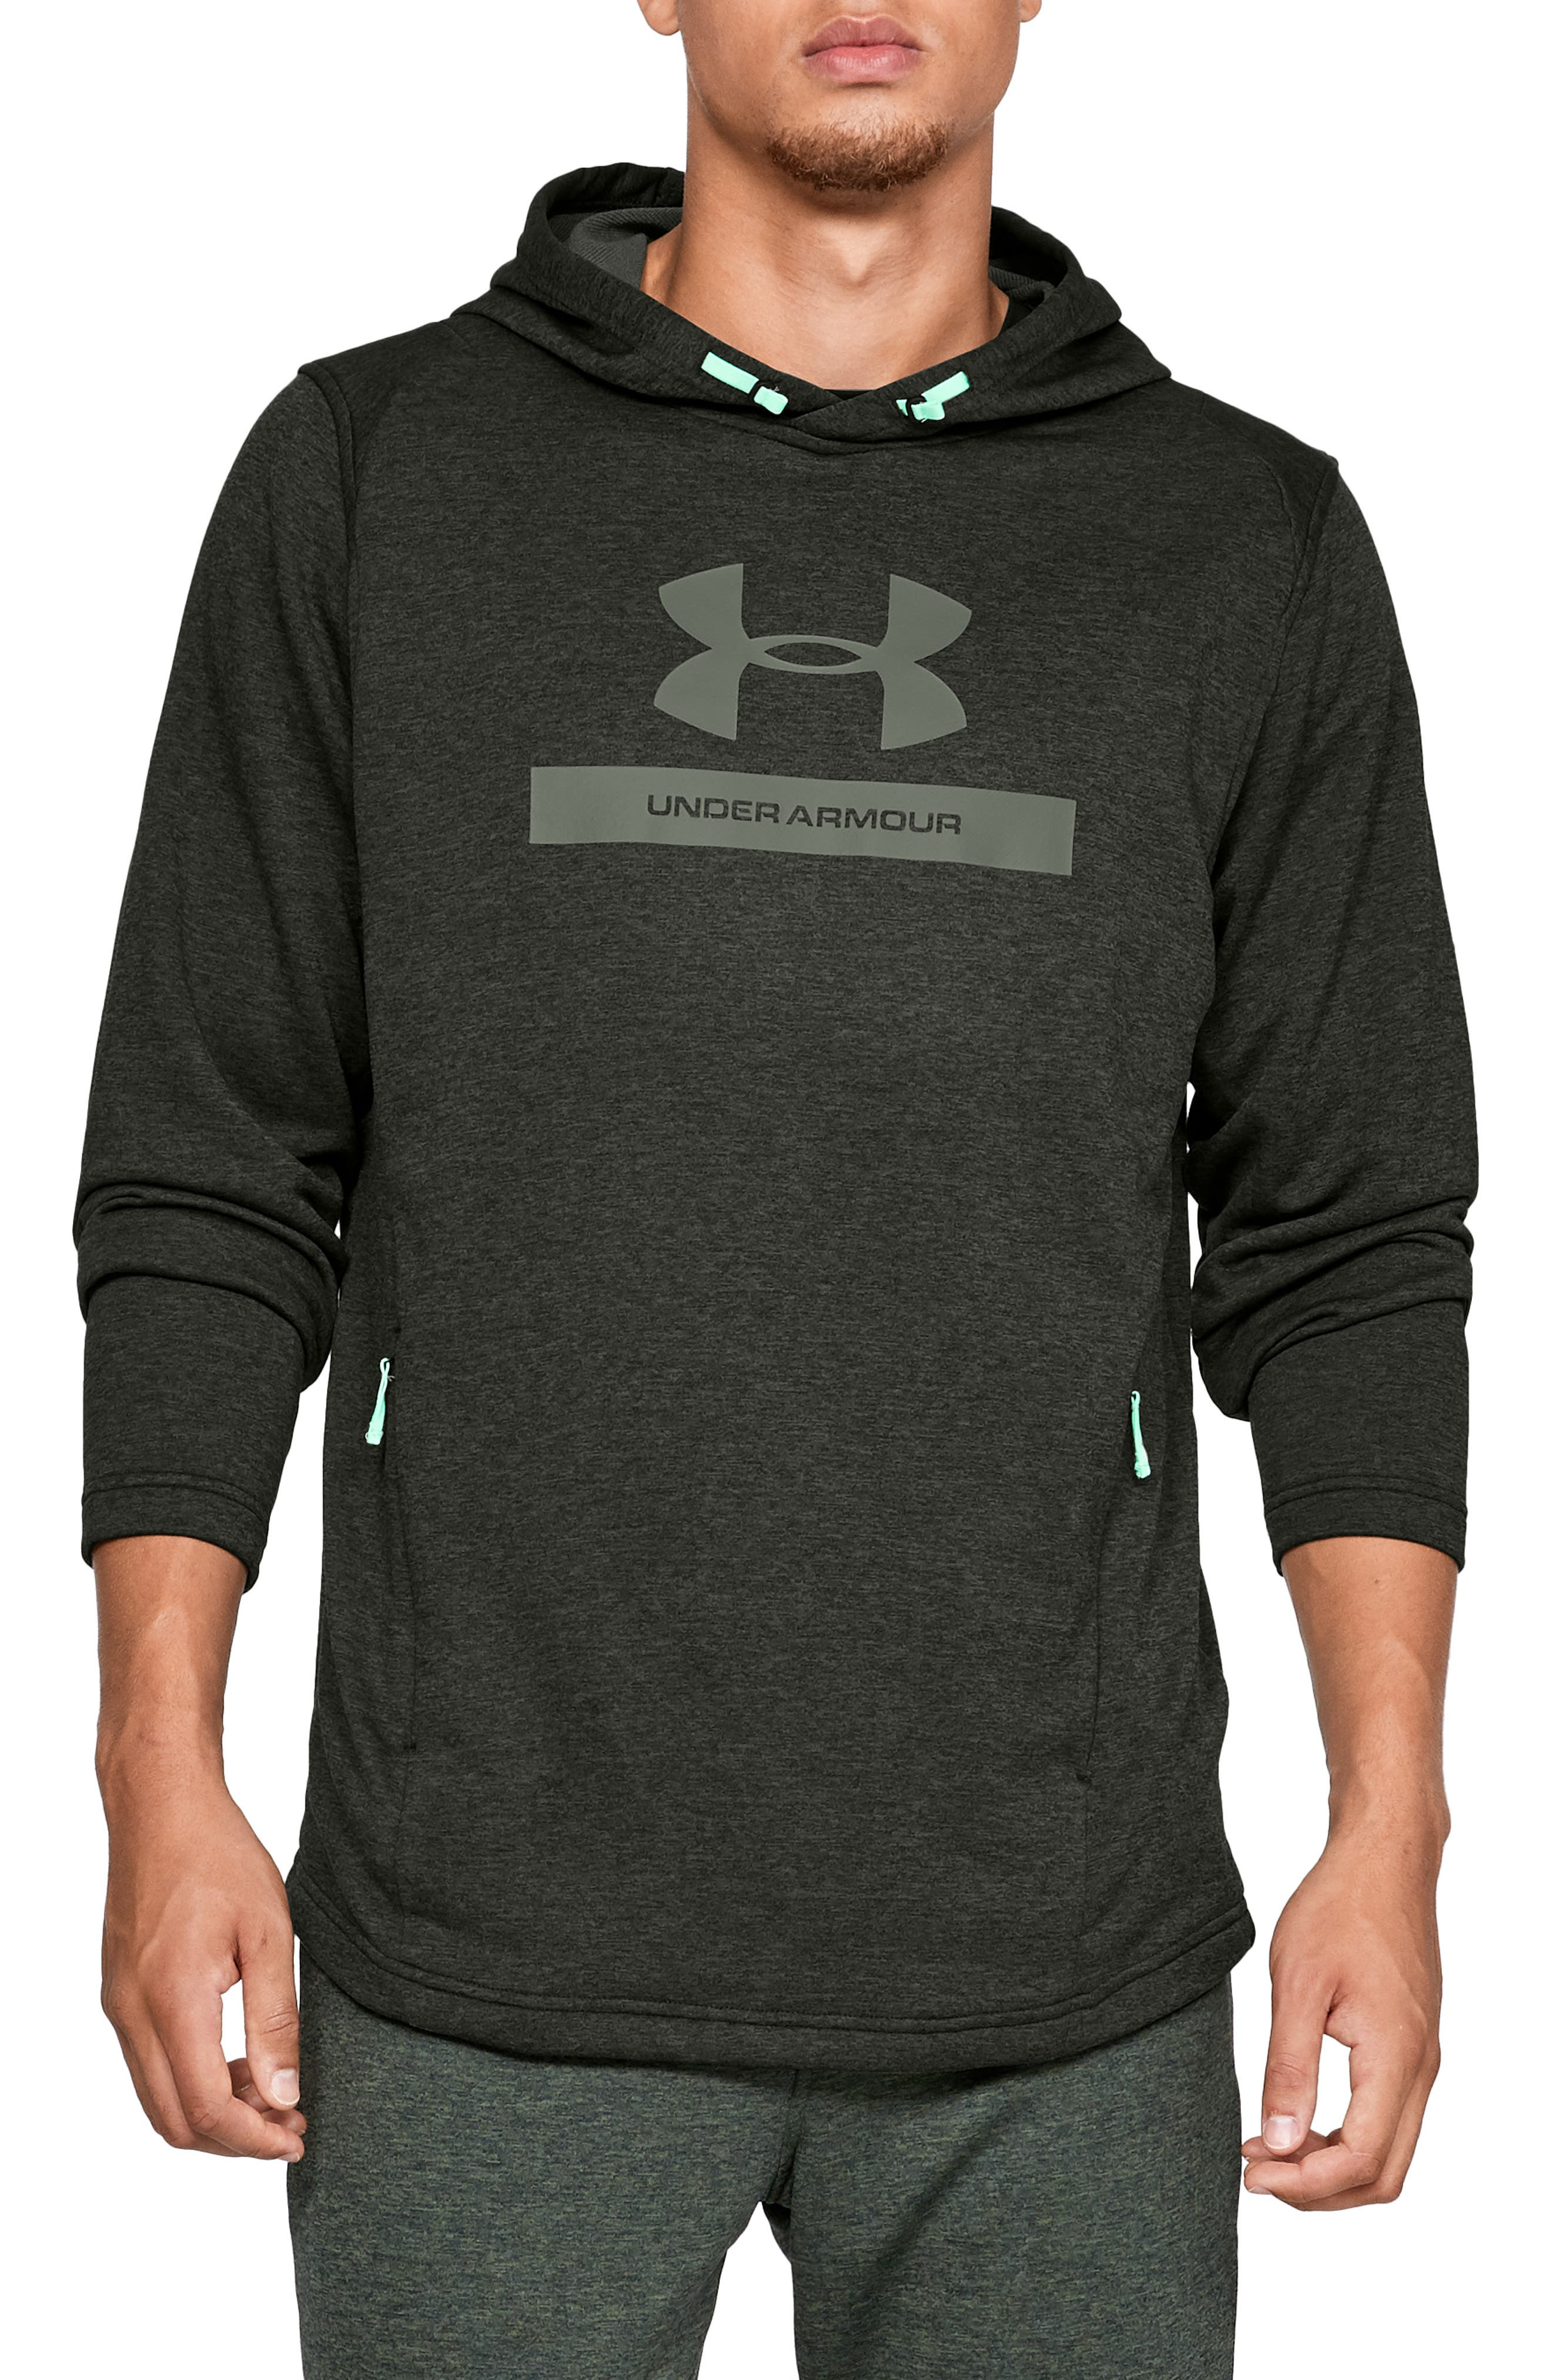 Under Armour Mk1 French Terry Hoodie, Green